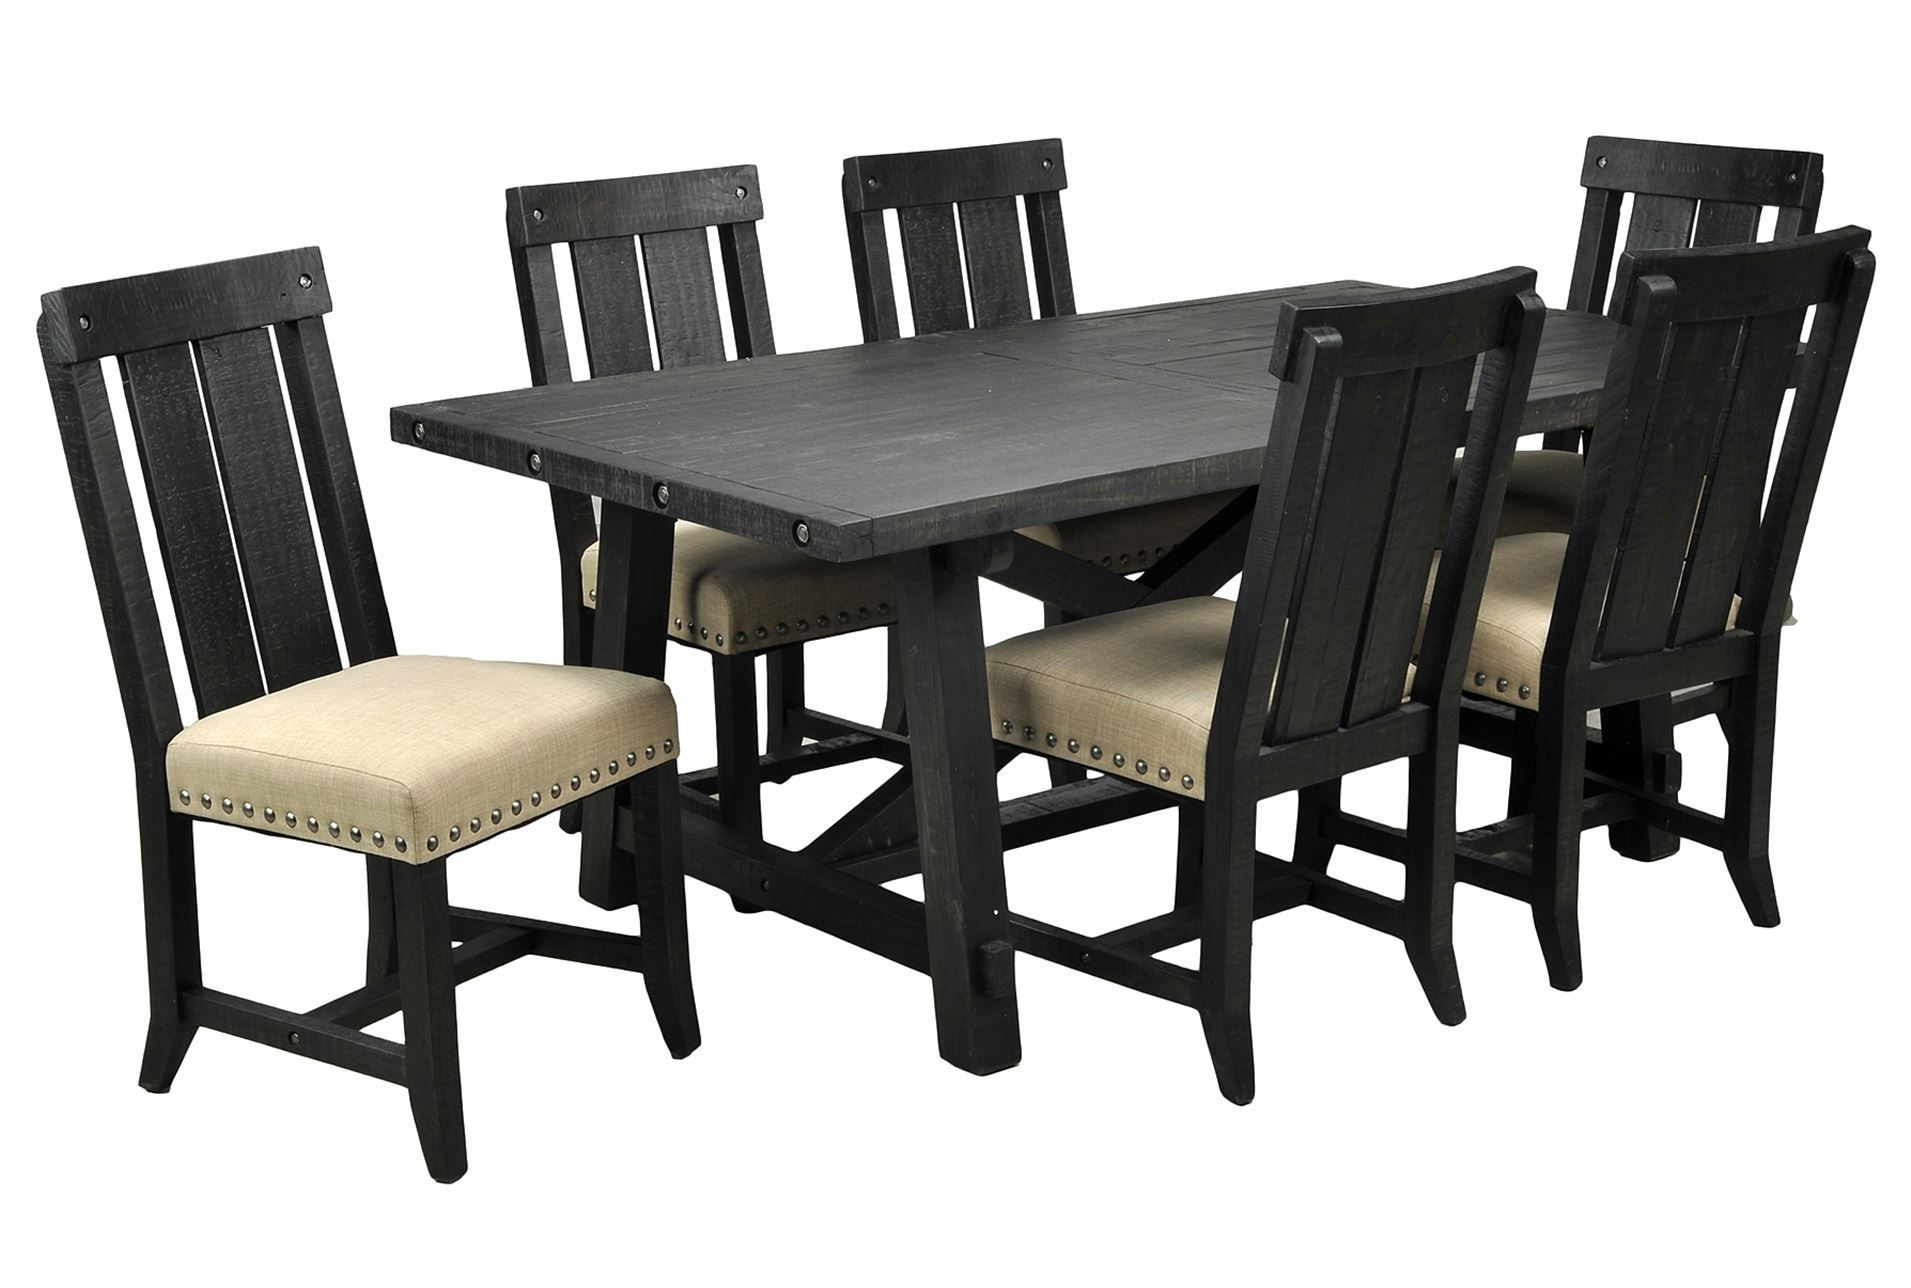 Jaxon 7 Piece Rectangle Dining Set W/wood Chairs | For The House I Pertaining To Most Current Craftsman 7 Piece Rectangle Extension Dining Sets With Arm & Side Chairs (Image 11 of 20)